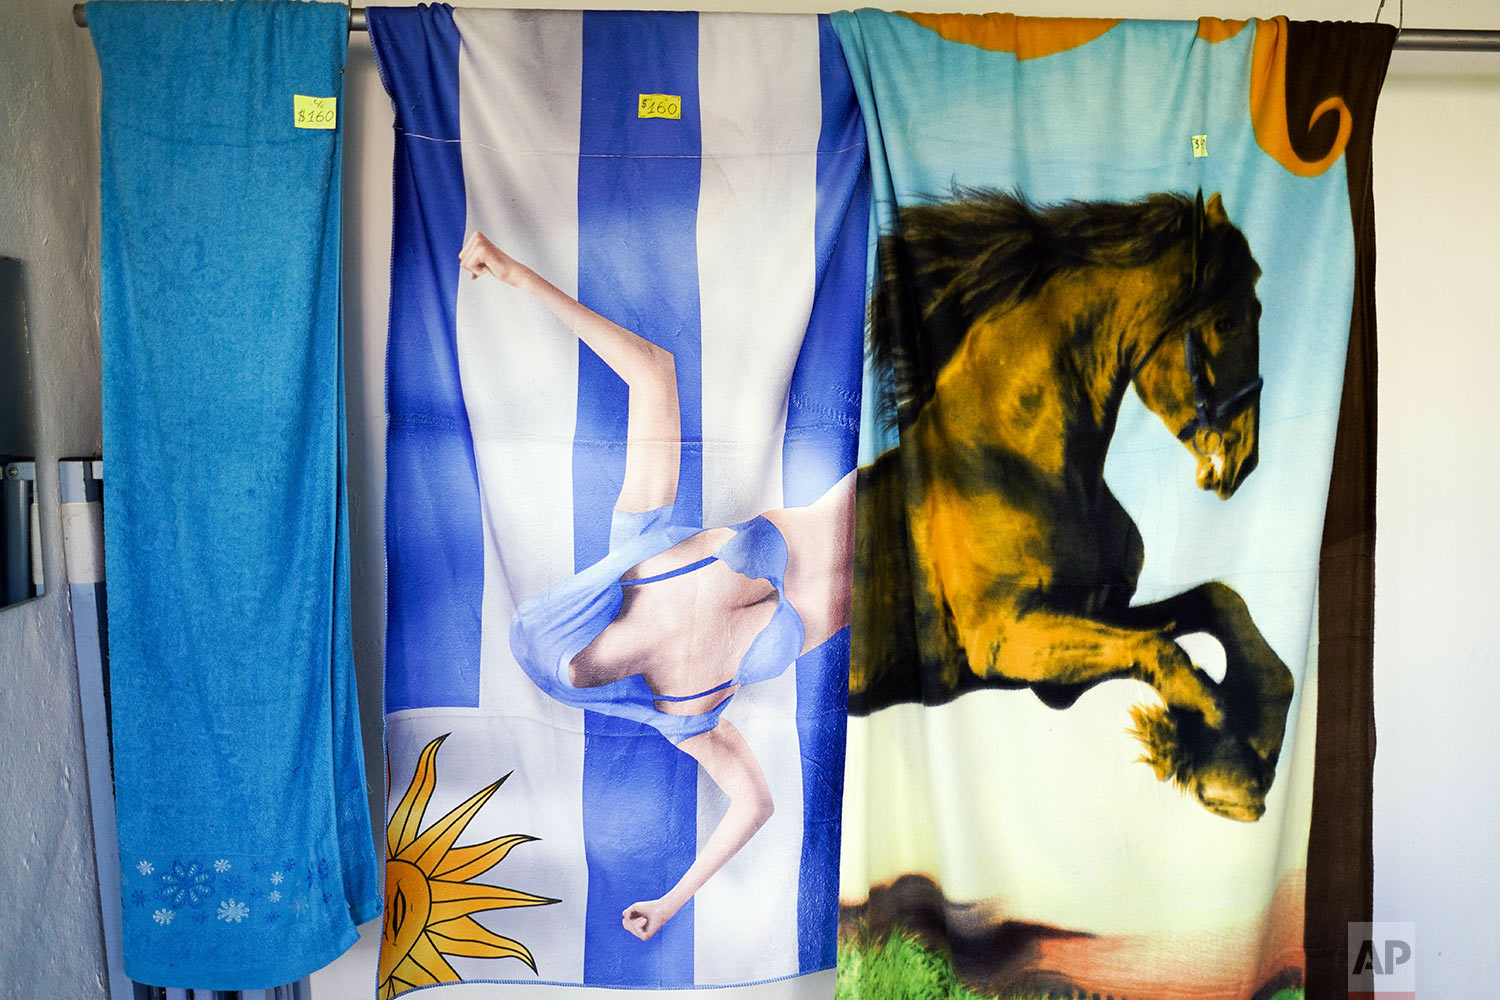 Towels are displayed for sale at a clothing store run by an inmate at the Punta de Rieles prison, in Montevideo, Uruguay, May 15, 2019. The inmate who runs this business also studies economics at the university. (AP Photo/Matilde Campodonico)